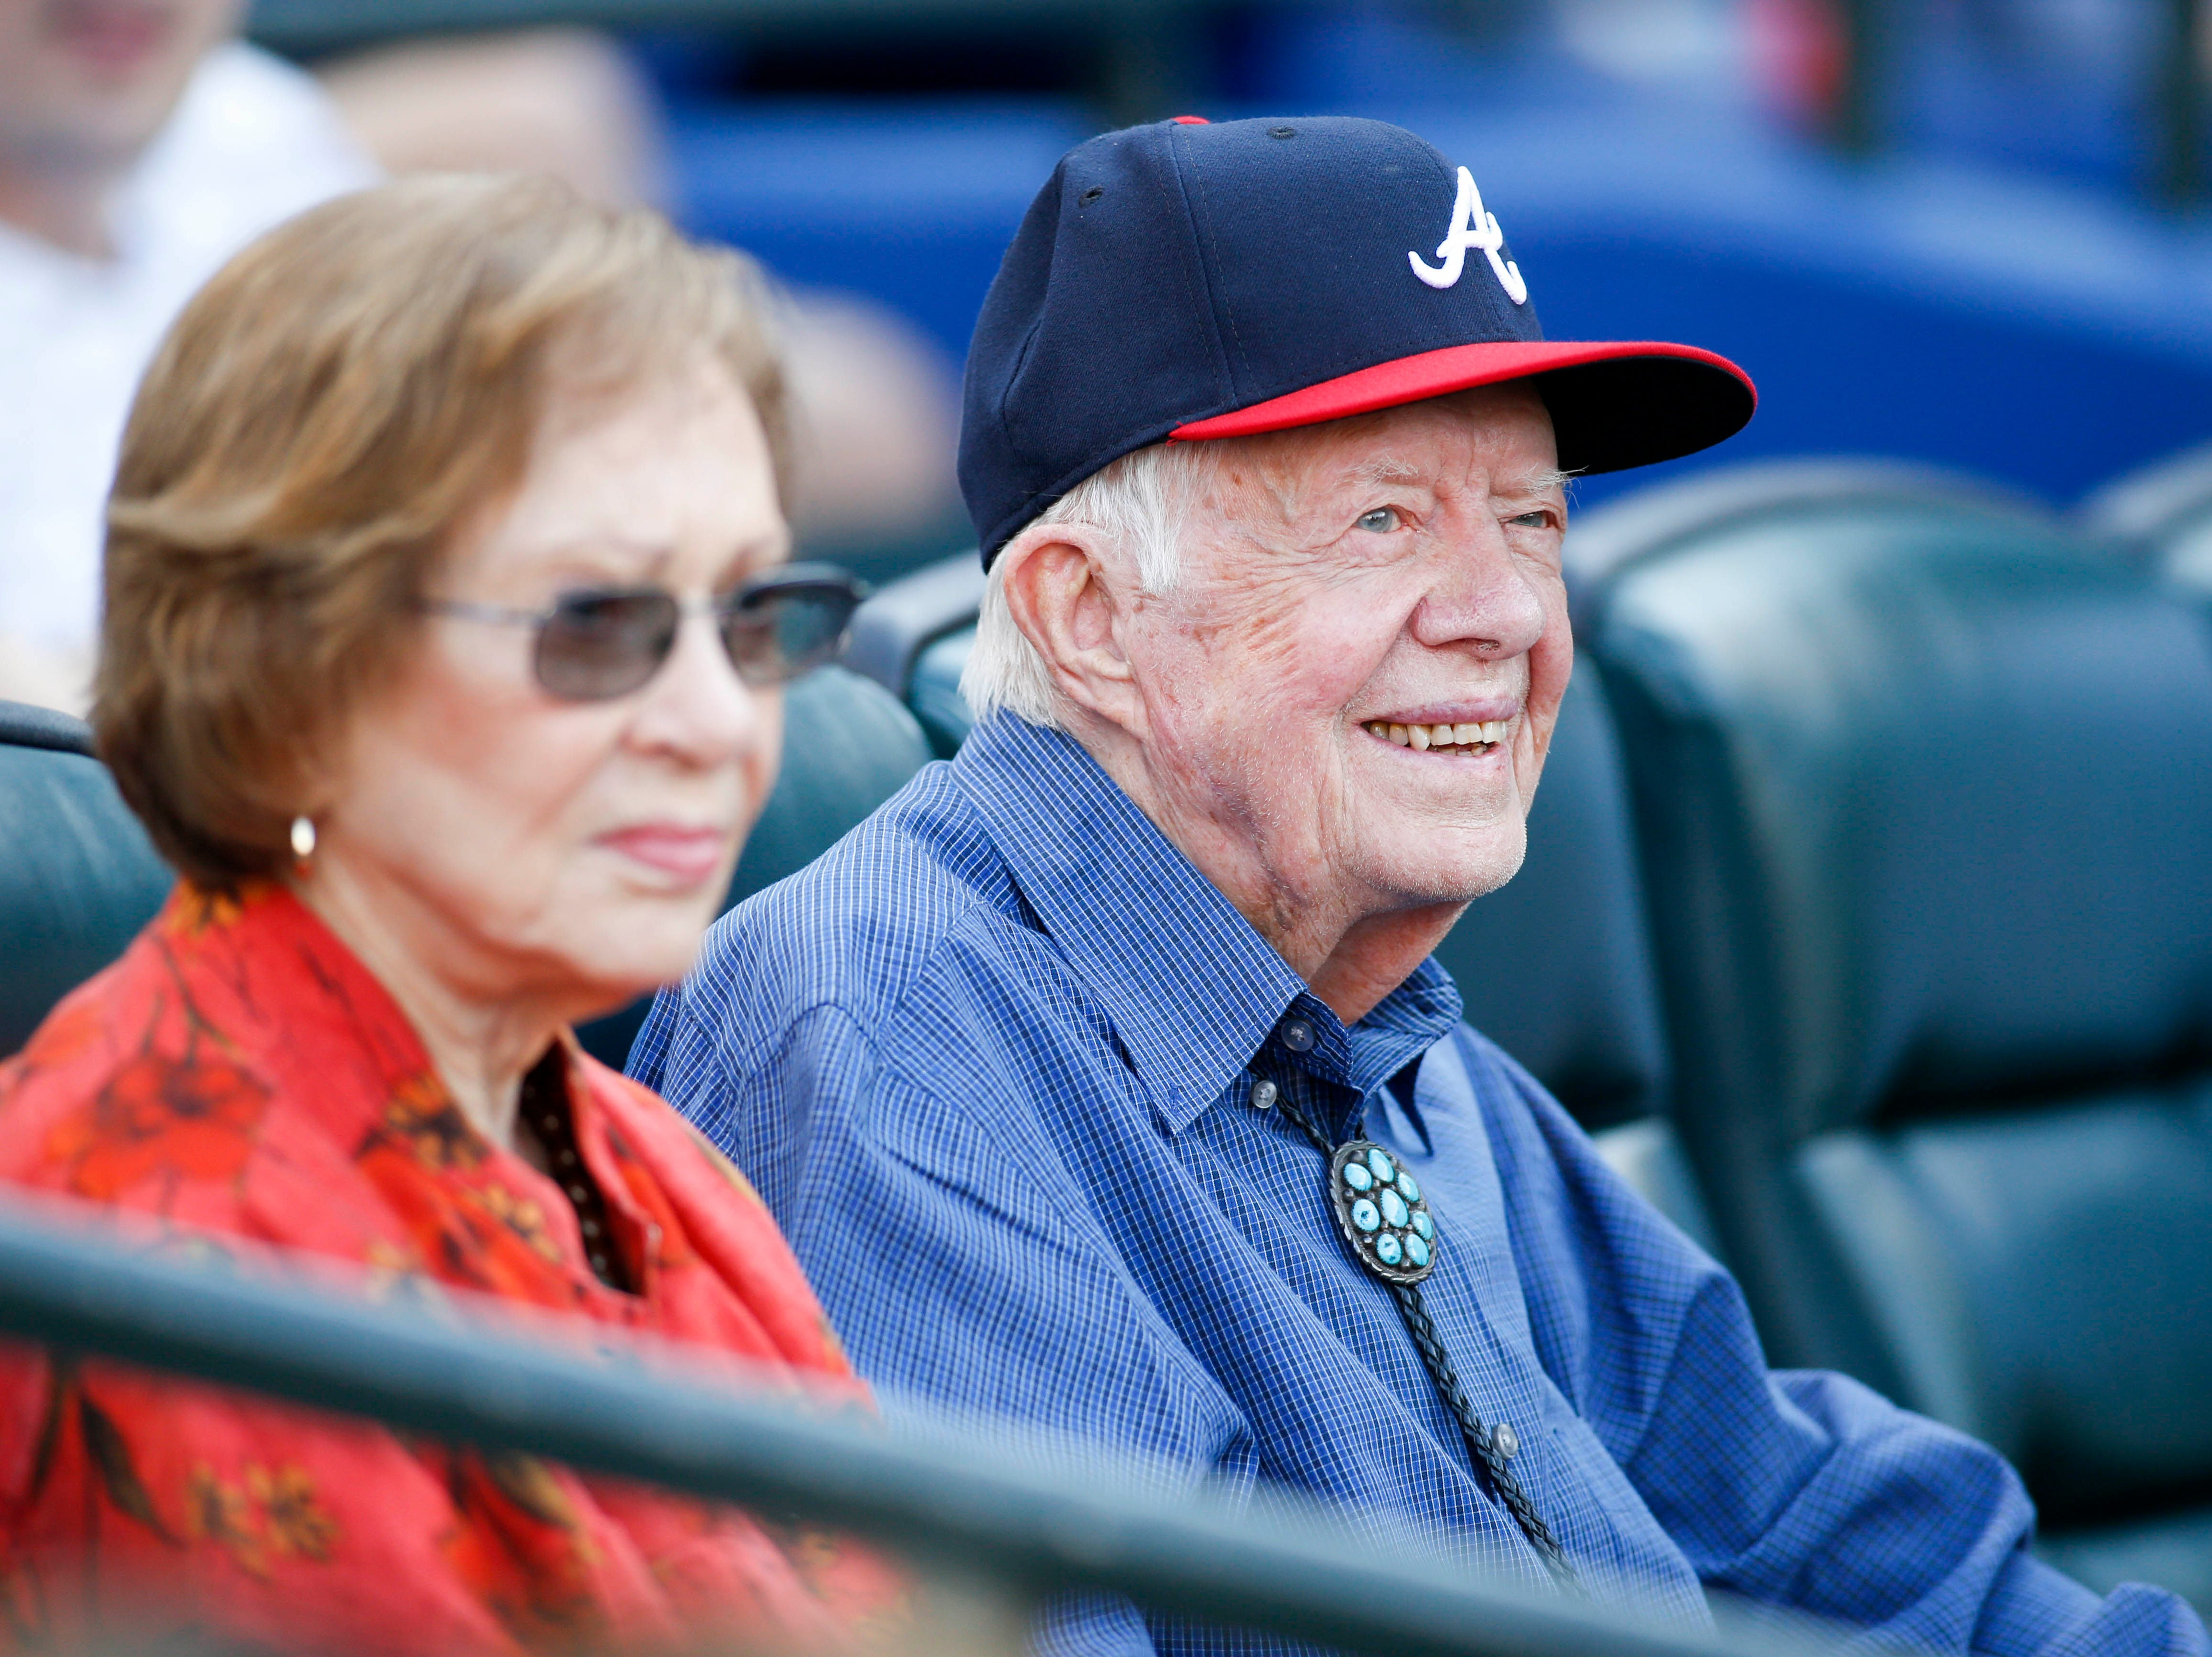 Jimmy Carter and his wife Rosalyn watch a game between the Atlanta Braves and Detroit Tigers in the eighth inning at Turner Field in Atlanta on Oct. 2, 2016.